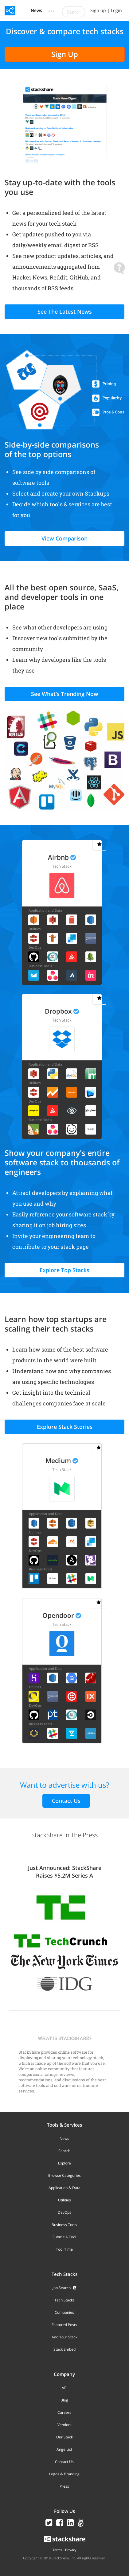 Example of Design for Computers & Electronics, Mobile Landing Page by stackshare.io | Mobile Landing Page Design